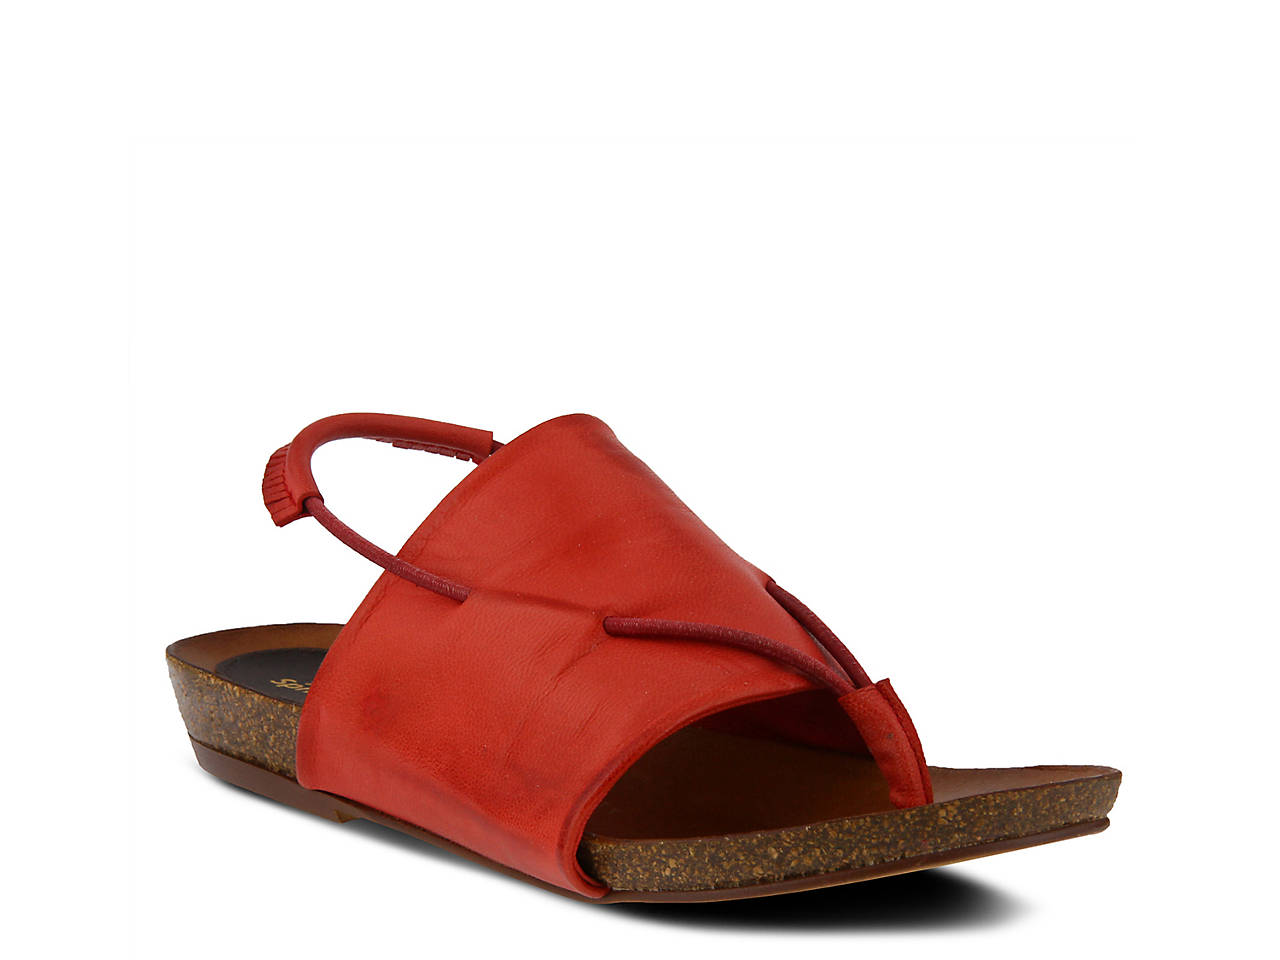 000ee490e77a Spring Step Madagascar Wedge Sandal Women s Shoes